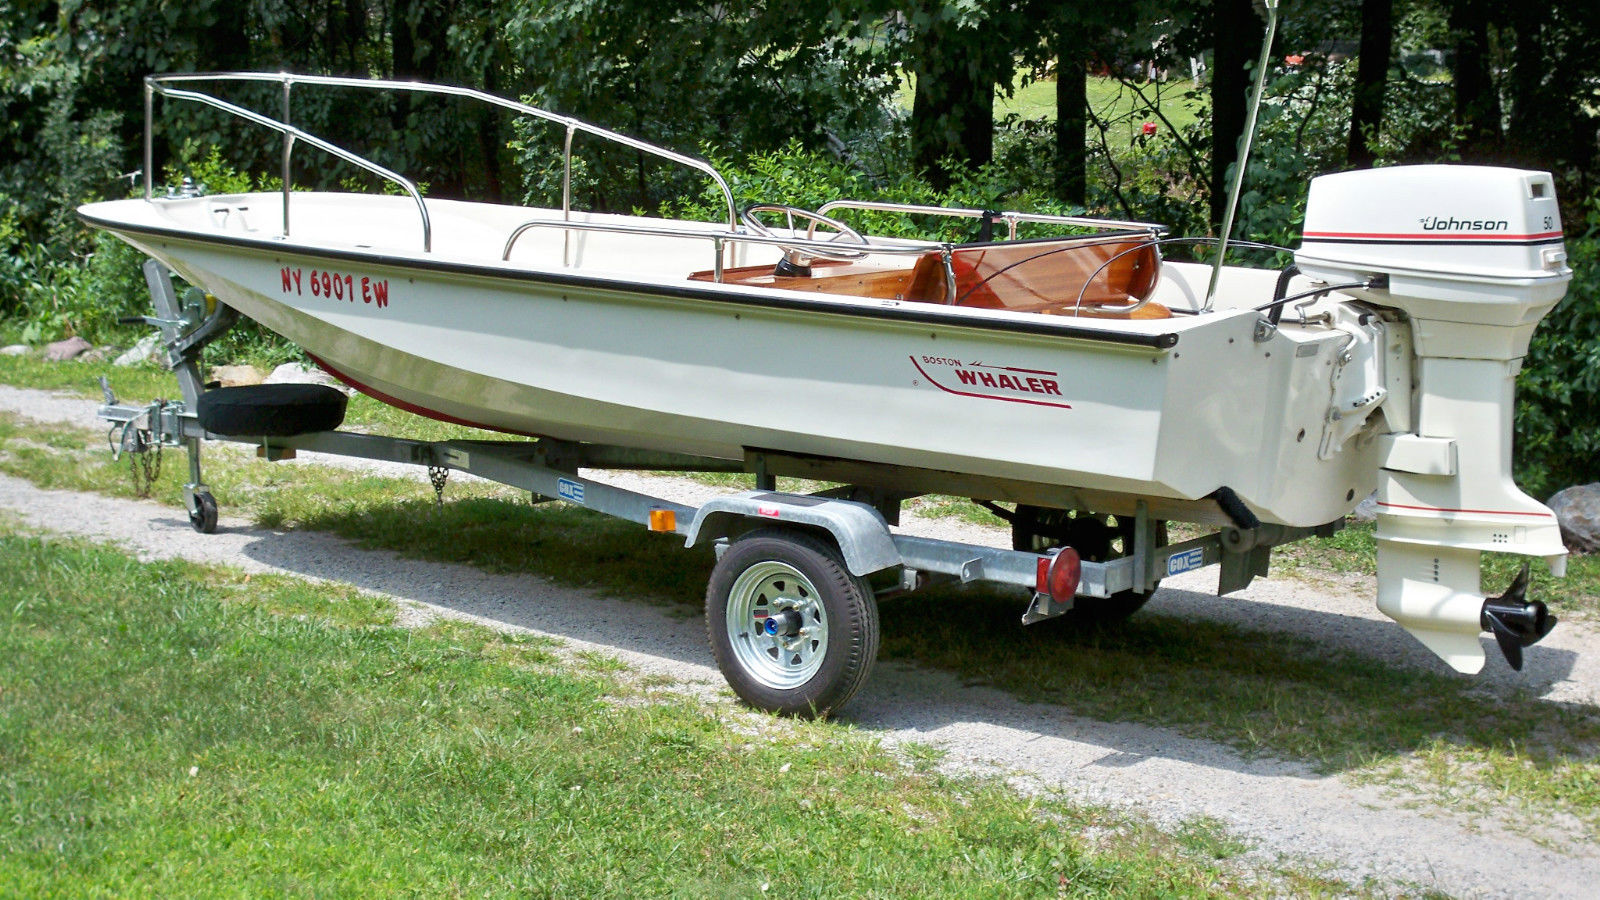 Boston Whaler SPORT For Sale For BoatsfromUSAcom - Sporting boat decalsboston whaler decals ebay